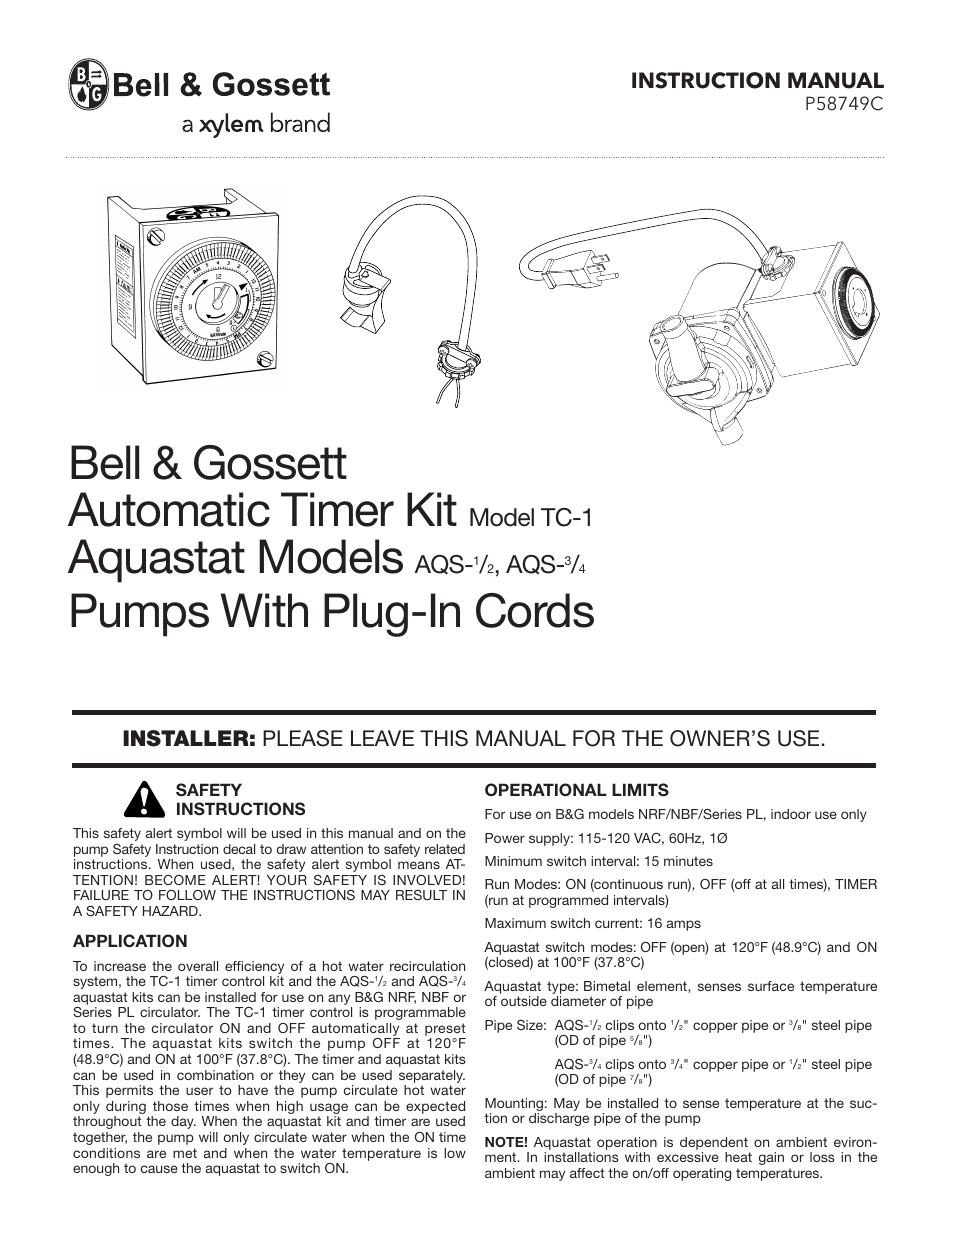 bell amp gossett aquastat wiring diagram best site